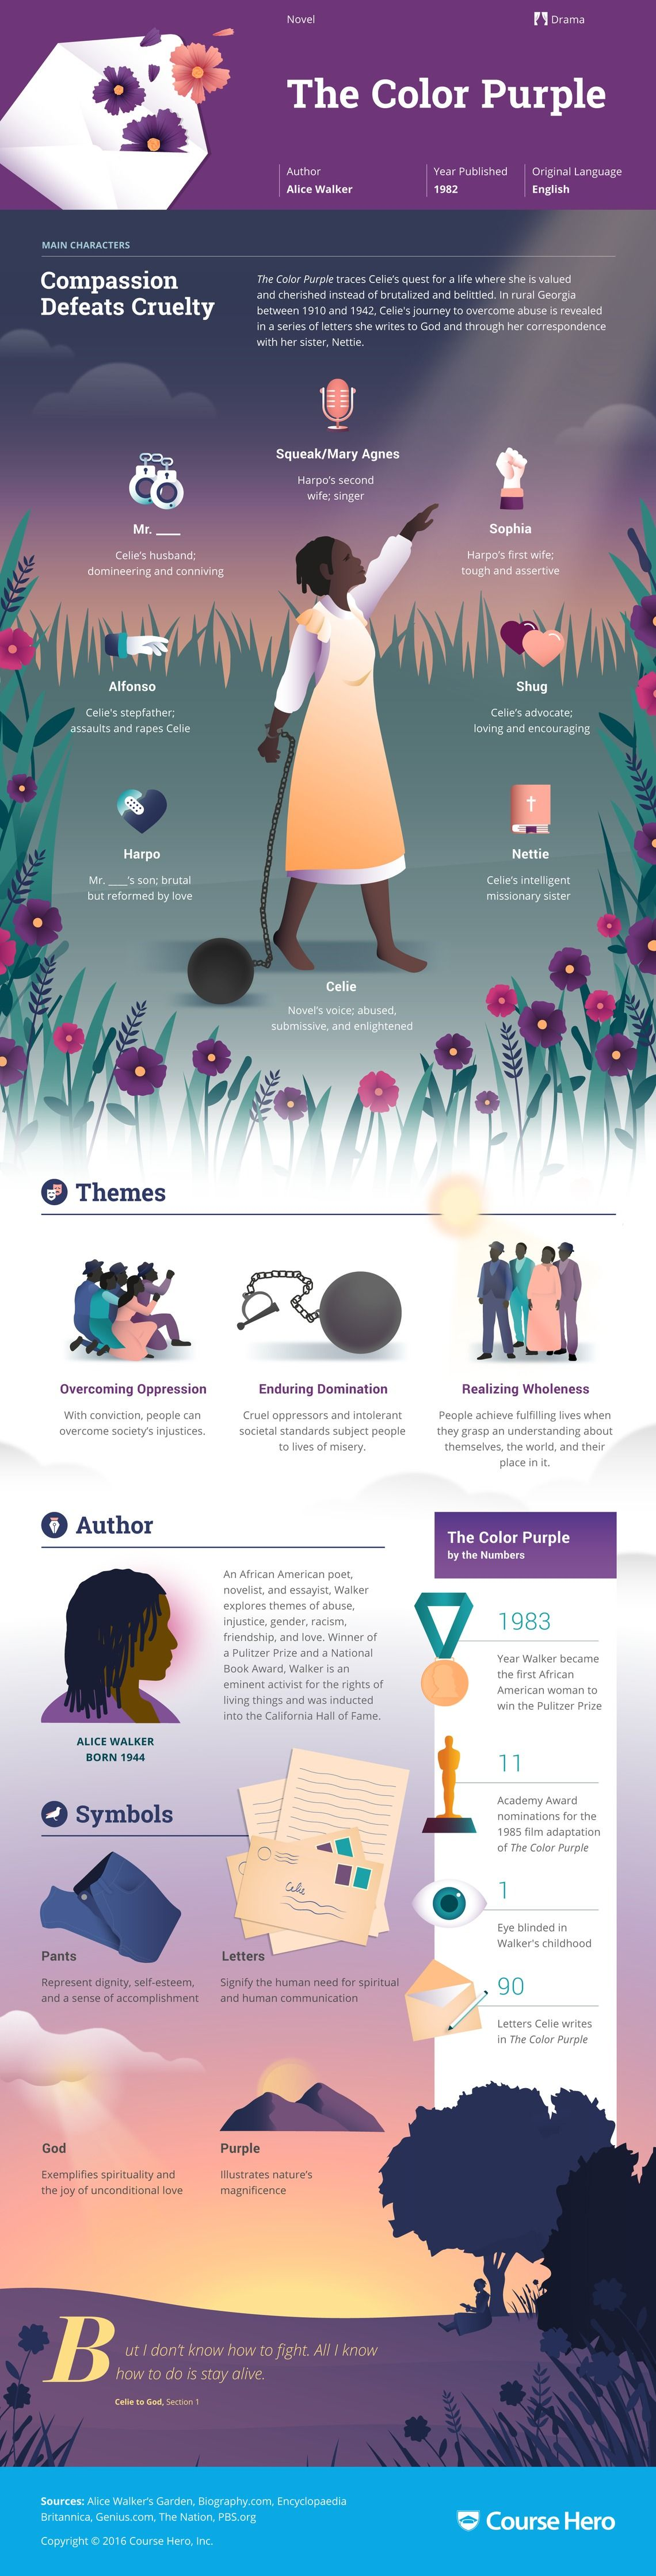 the color purple infographic course hero literature the color purple infographic course hero